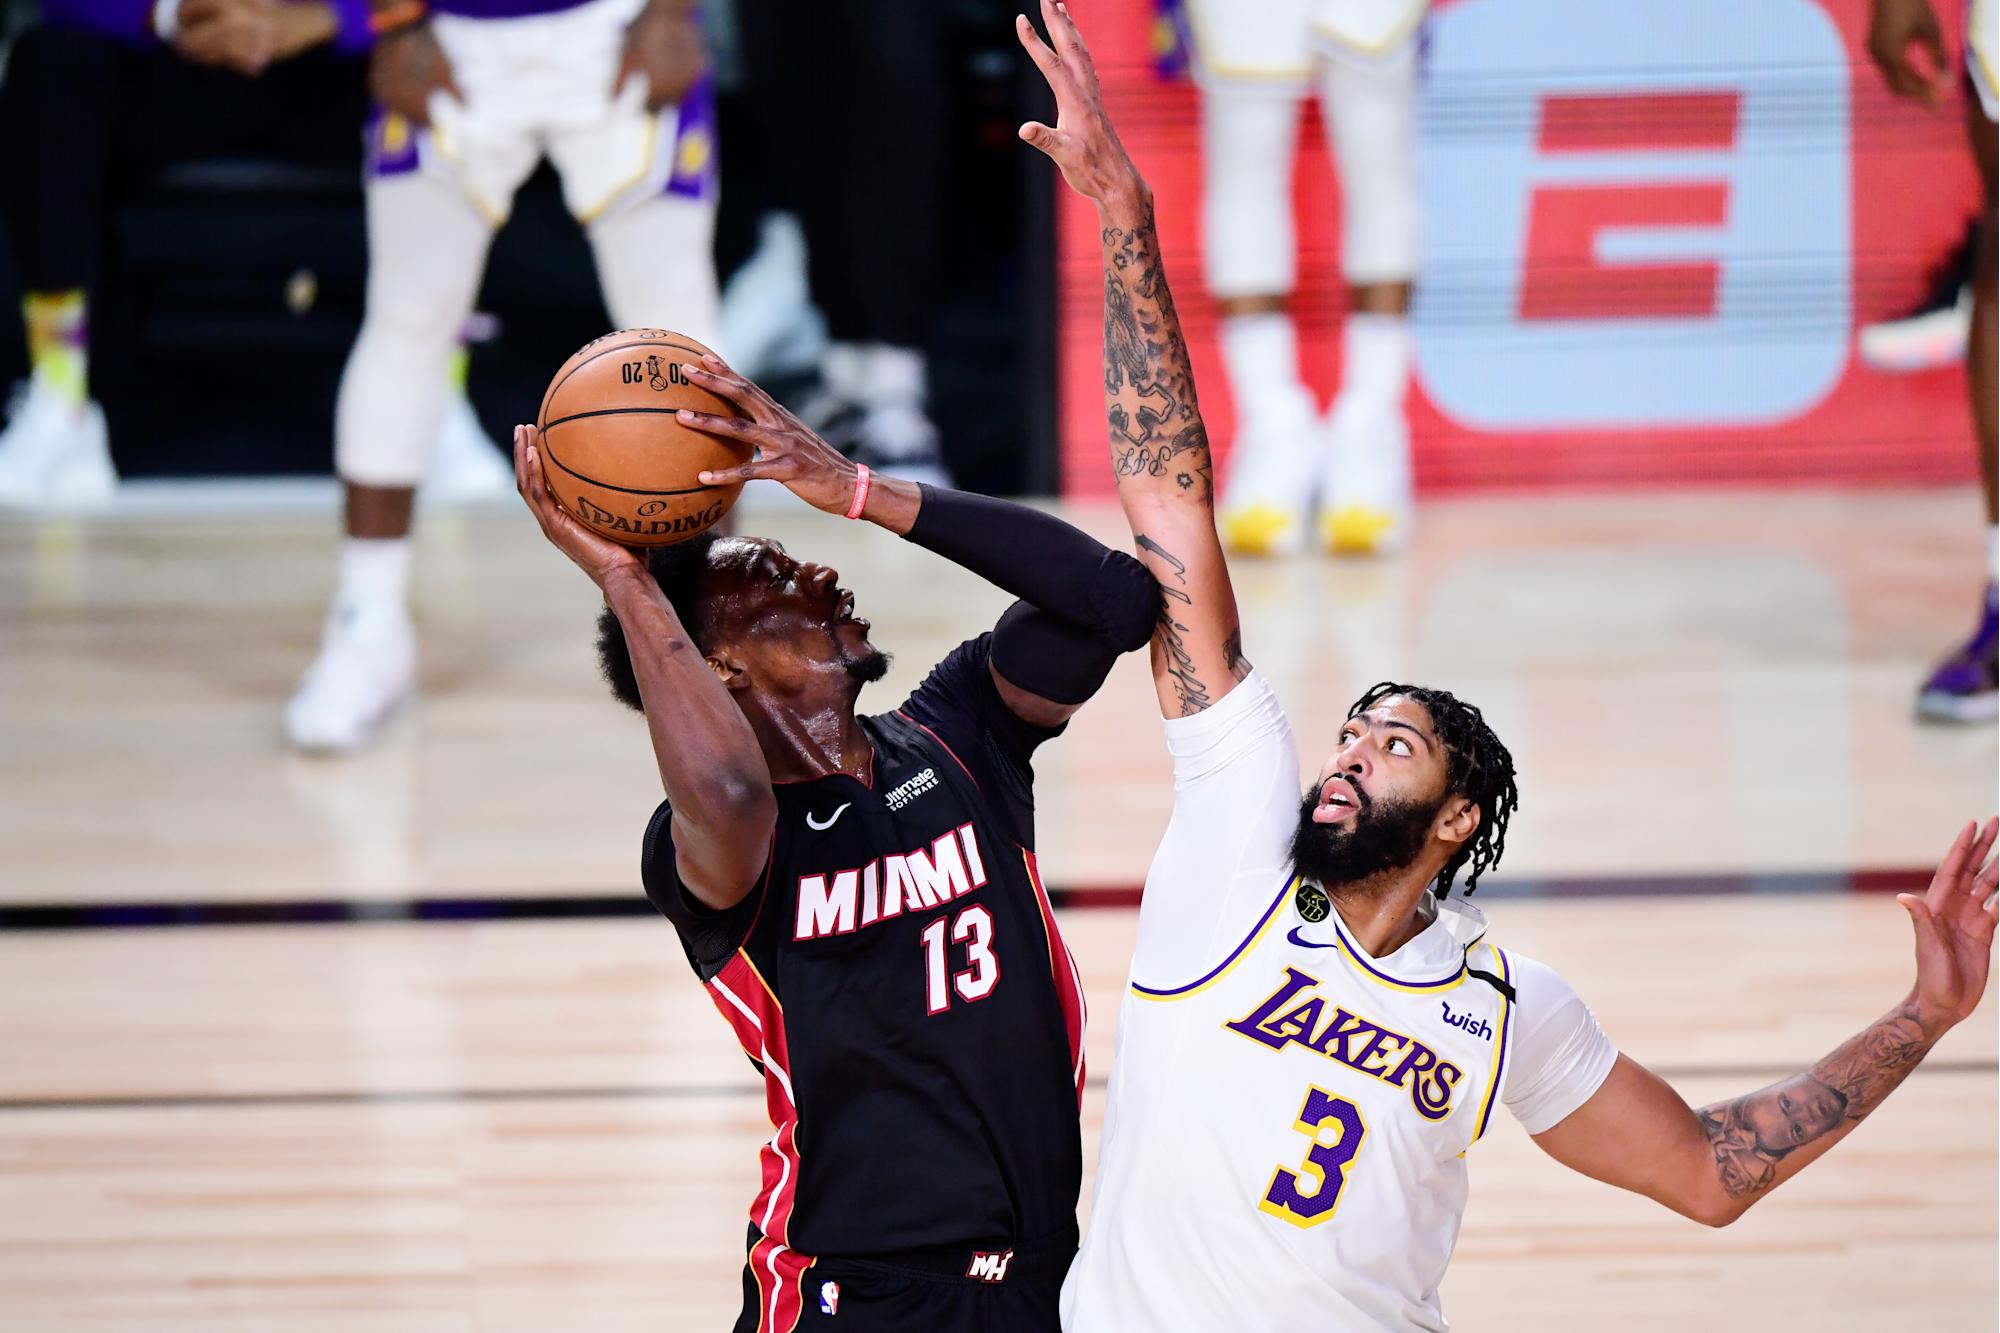 Lakers' signature defense should mute calls for an asterisk around 2020 NBA championship